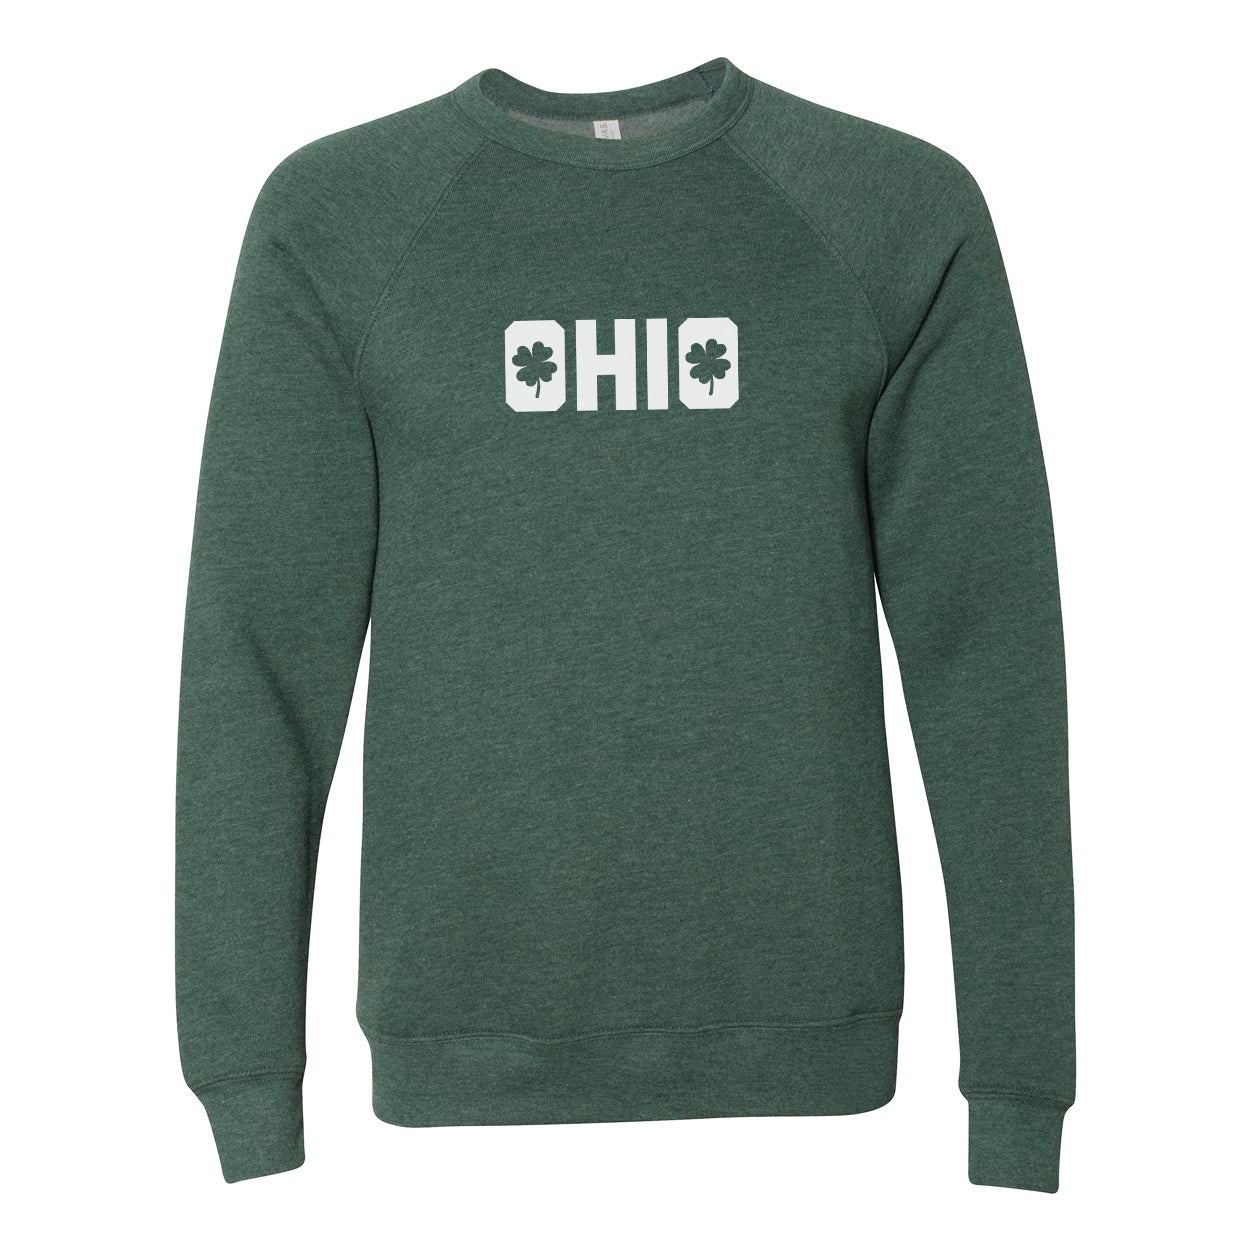 Shamrocks in Ohio Ultra Soft Sweatshirt - Clothe Ohio - Soft Ohio Shirts